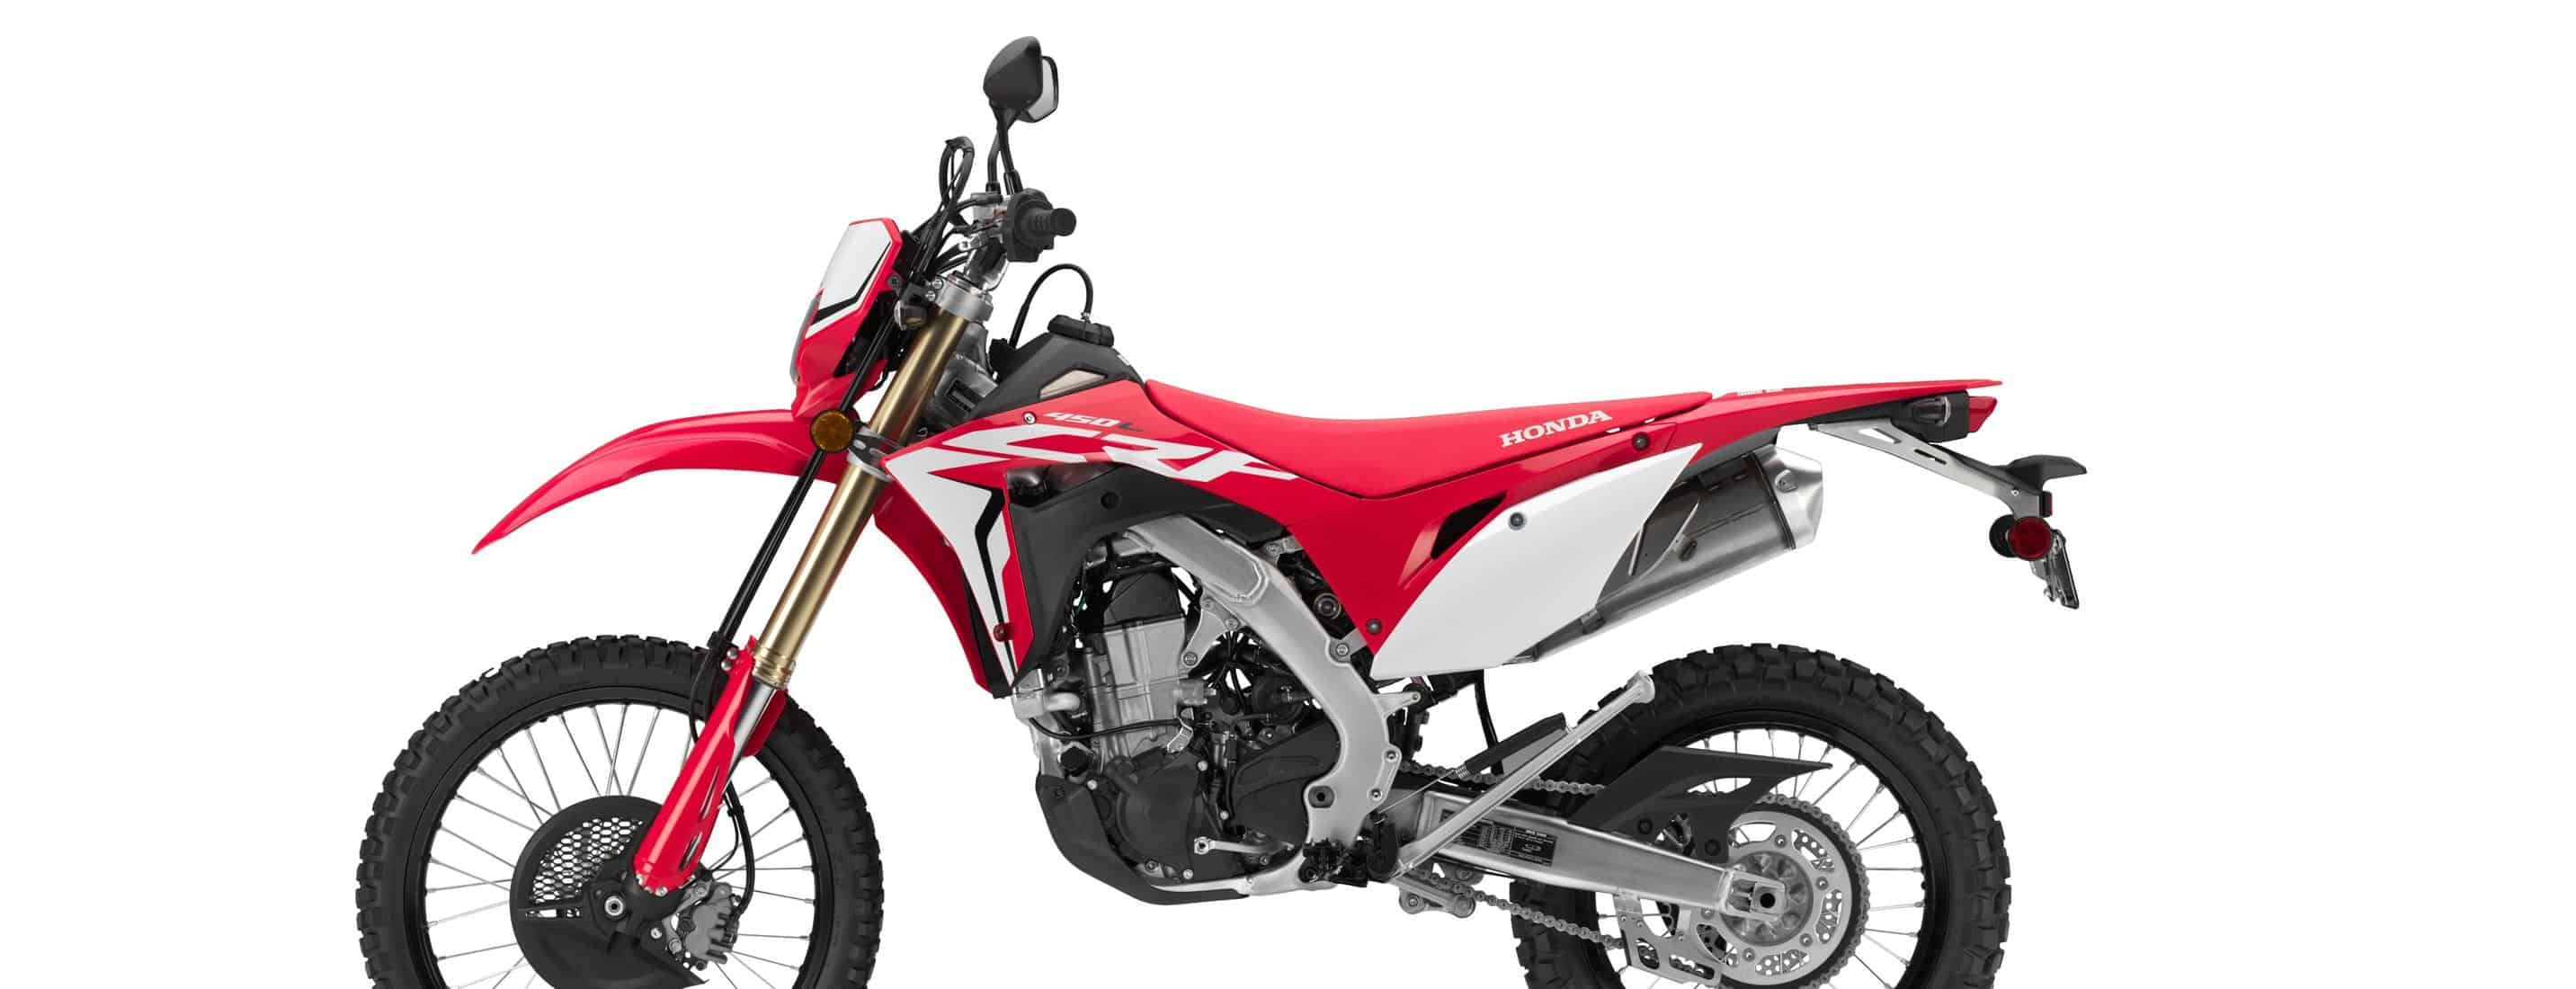 Honda CRF450L Trail Bike